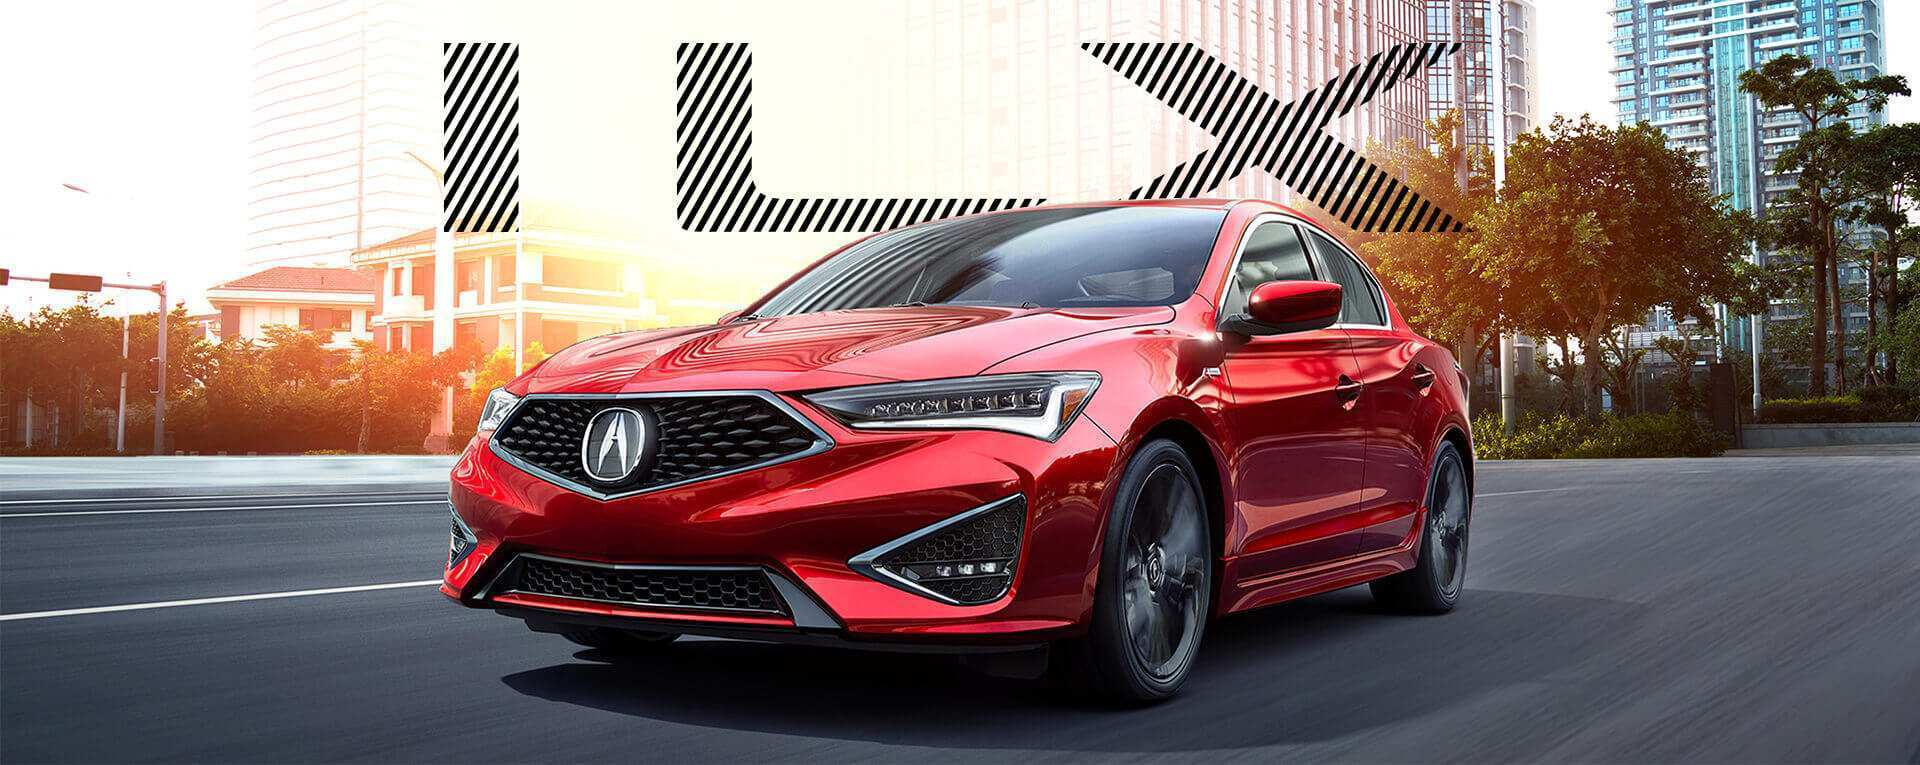 35 Gallery of Acura Hatchback 2019 Style with Acura Hatchback 2019